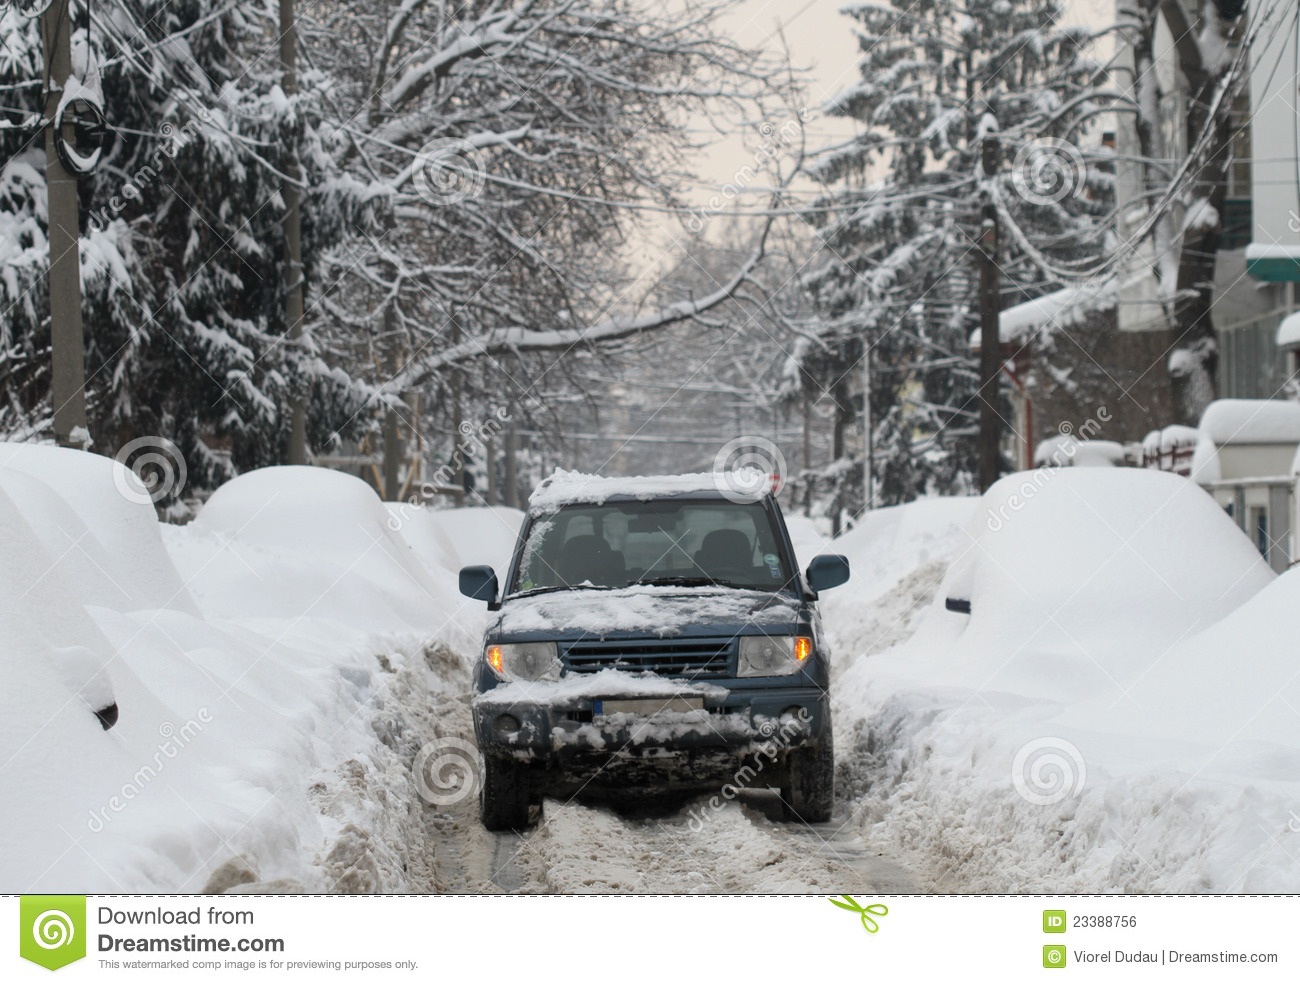 Snowy off road vehicle